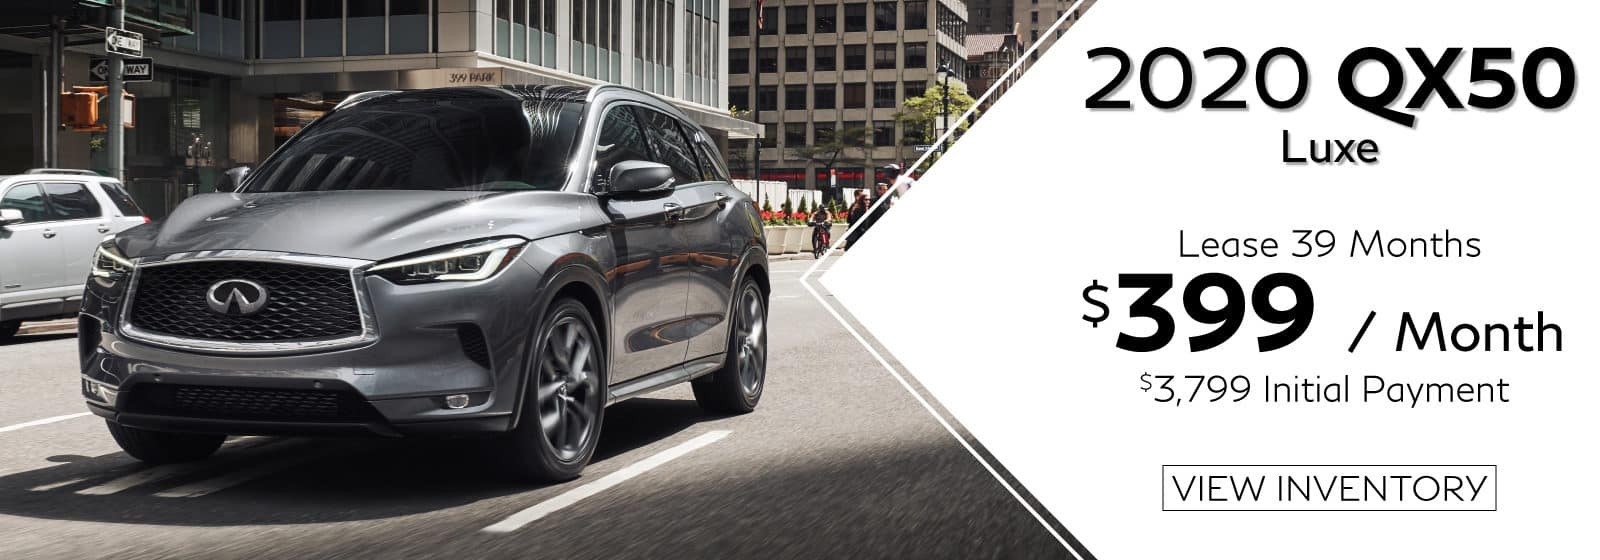 2020 QX50 LUXE. $399 a Month for 39 months. $3,799 initial payment. Gray QX50 driving in city. View Inventory button.